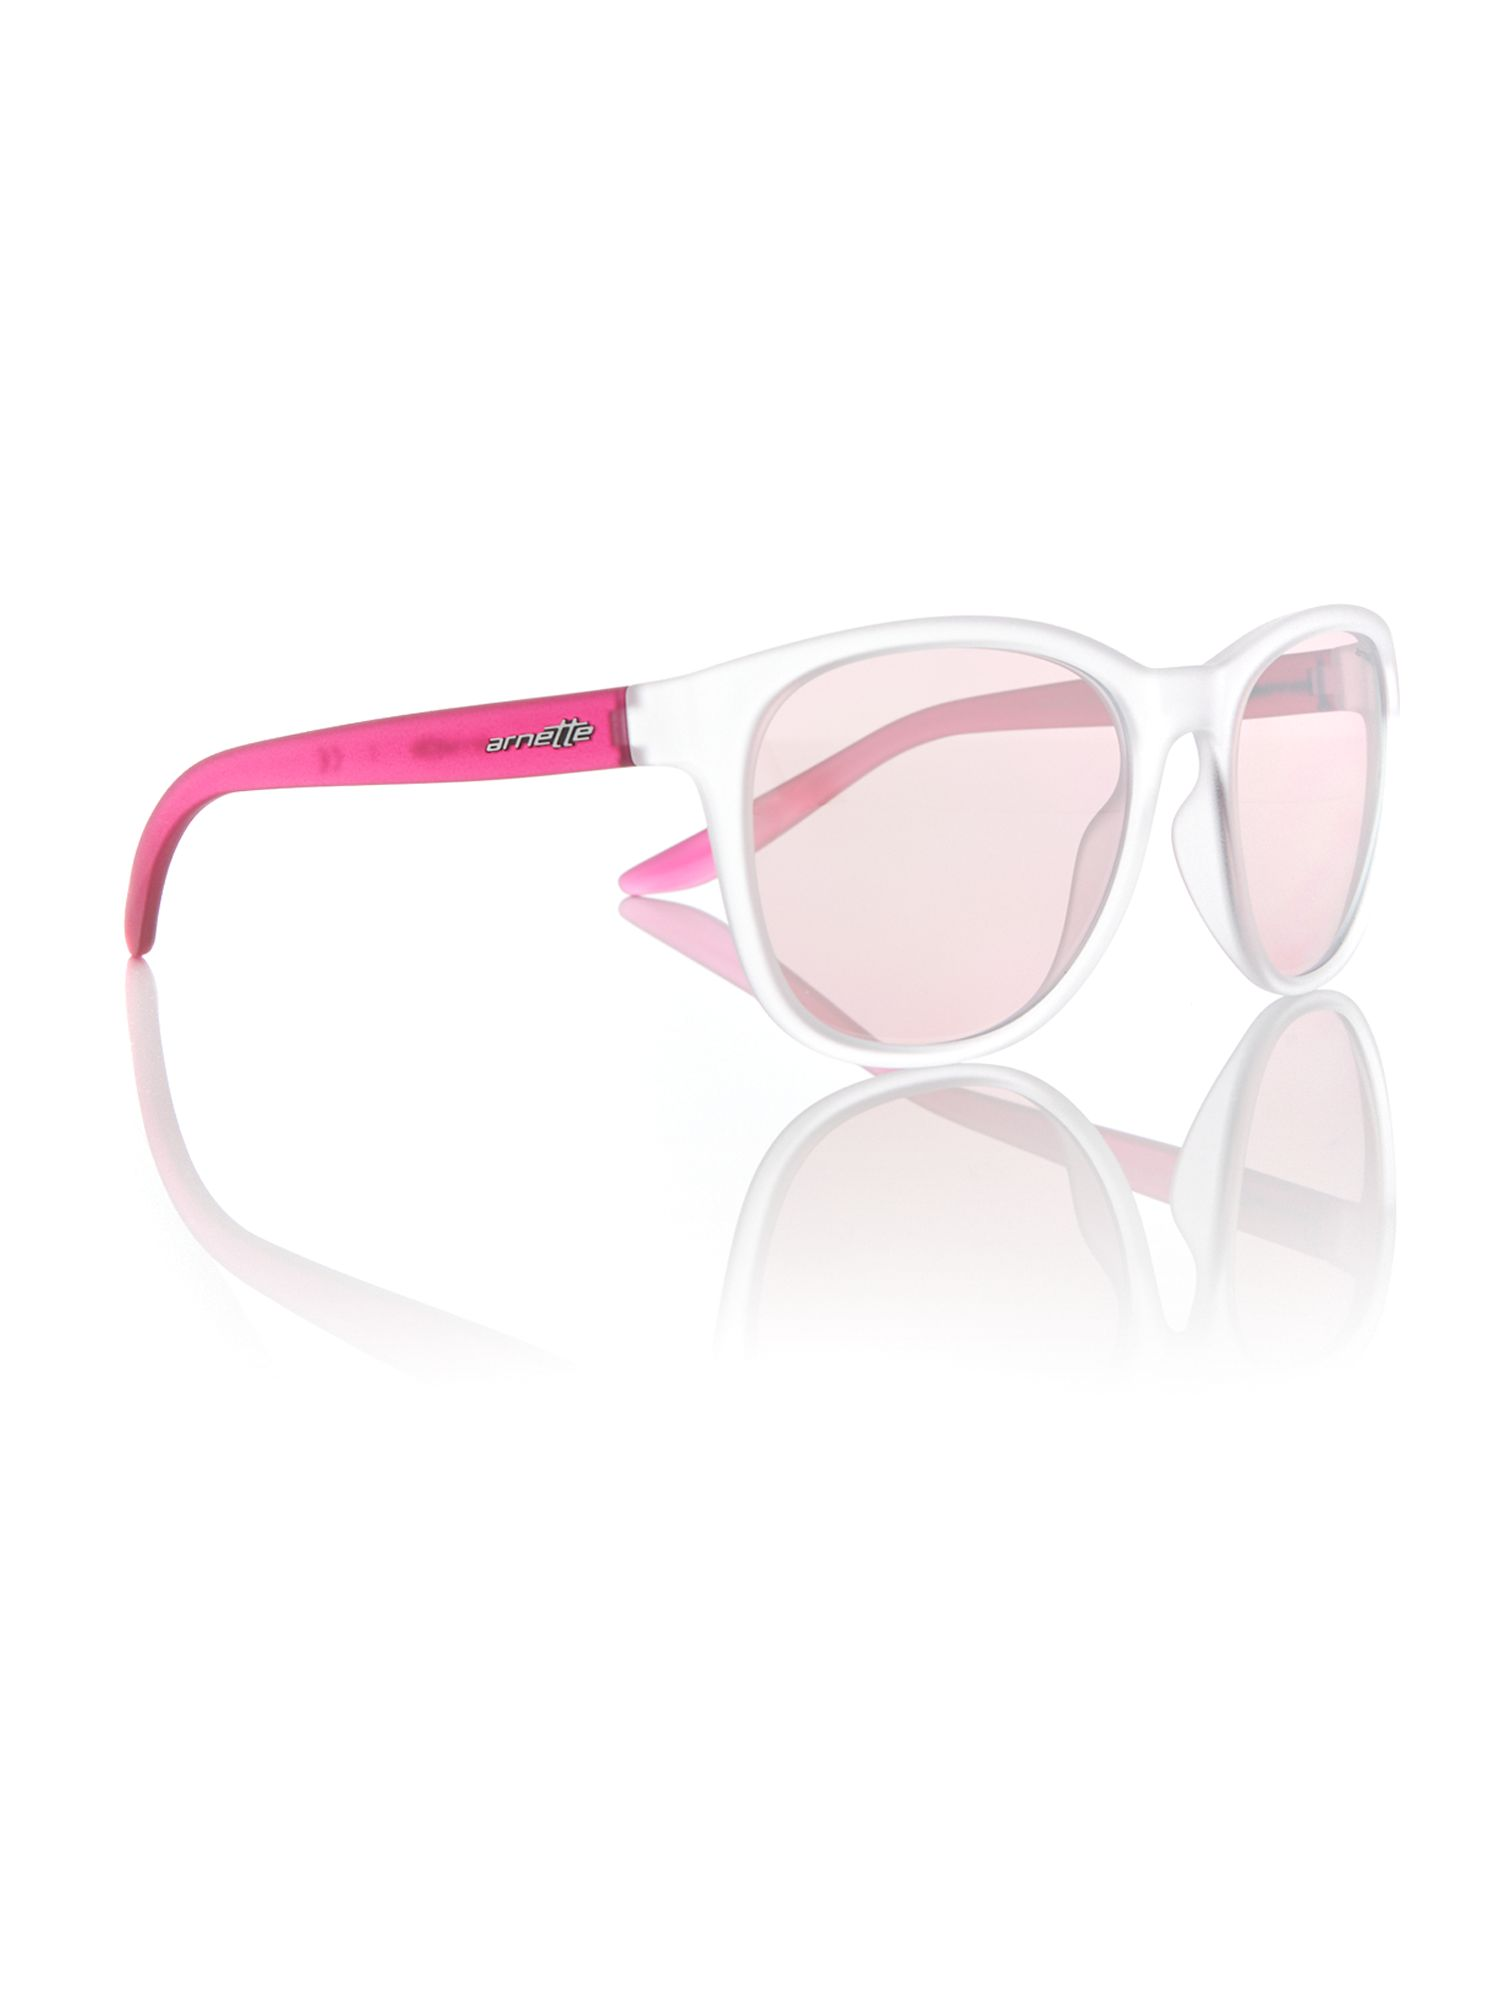 Arnette Pink phantos AN4228 GROWER sunglasses